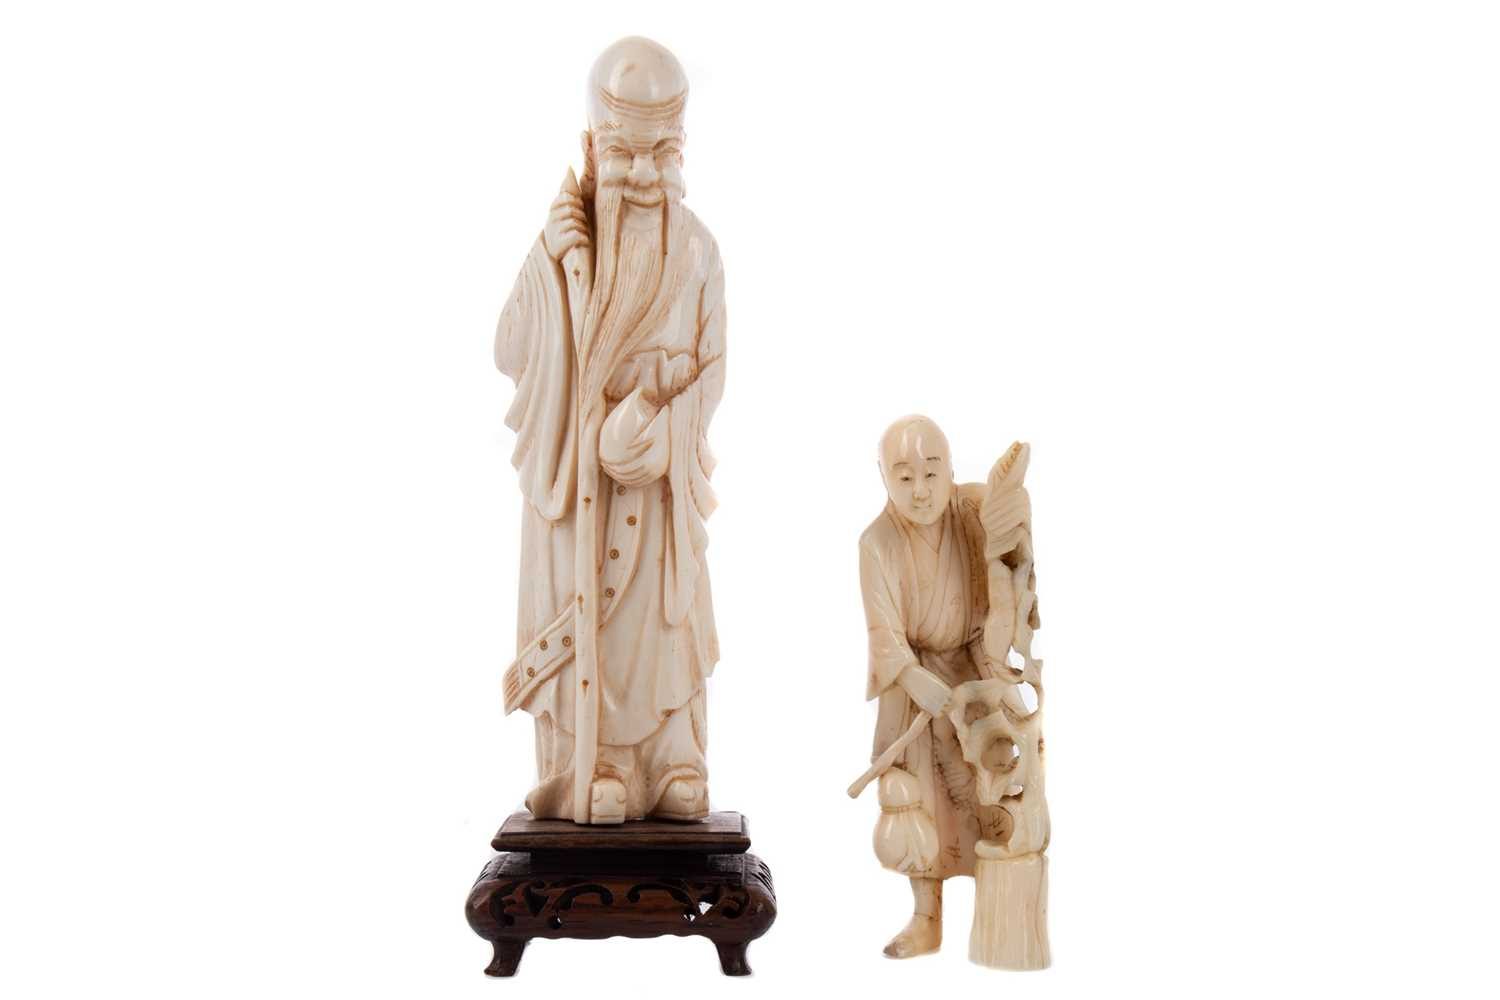 Lot 1641 - AN EARLY 20TH CENTURY CHINESE IVORY CARVING OF SHOU LAO AND ANOTHER CARVING